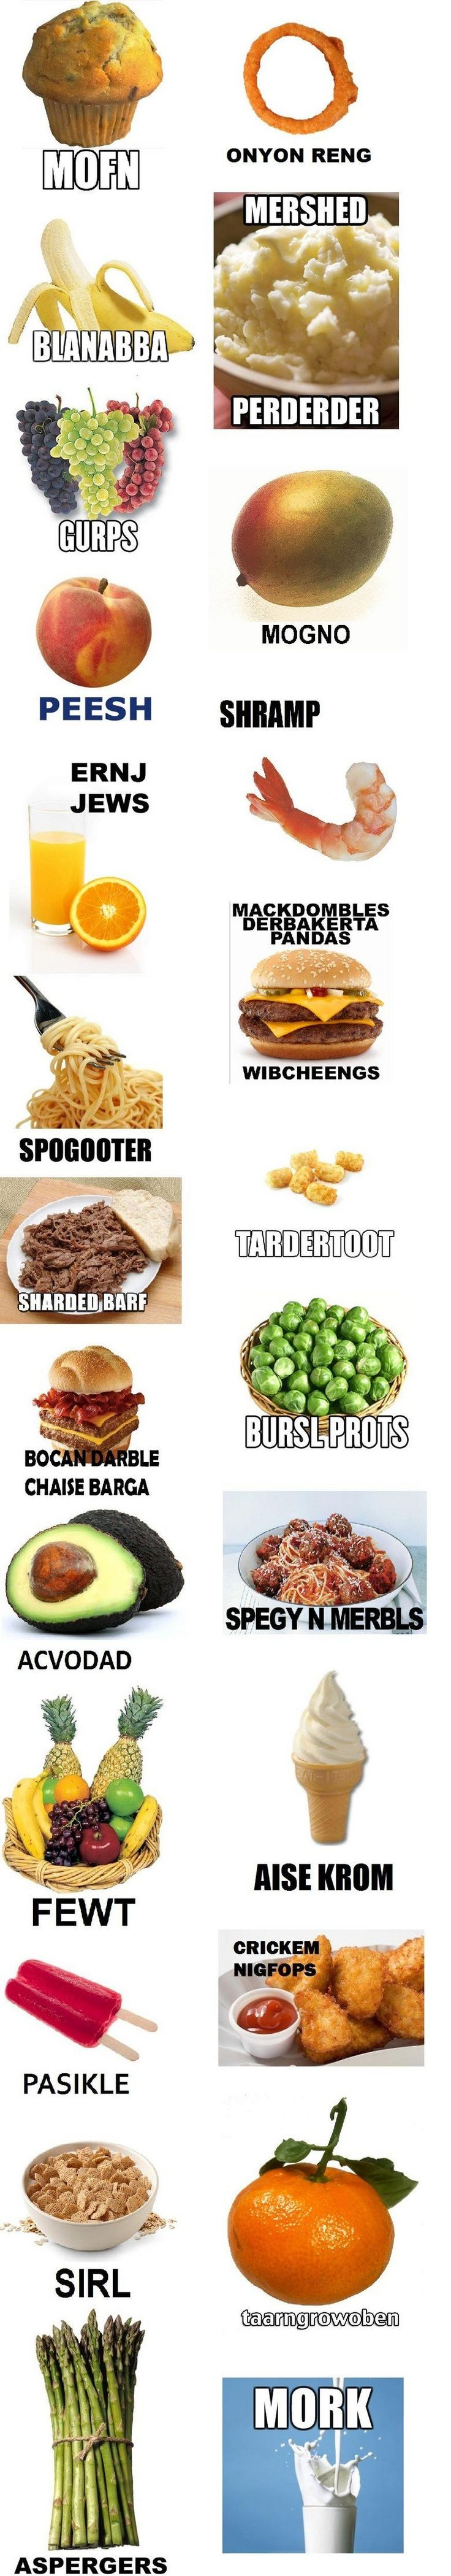 This picture has me pronouncing things in ridiculous ways now